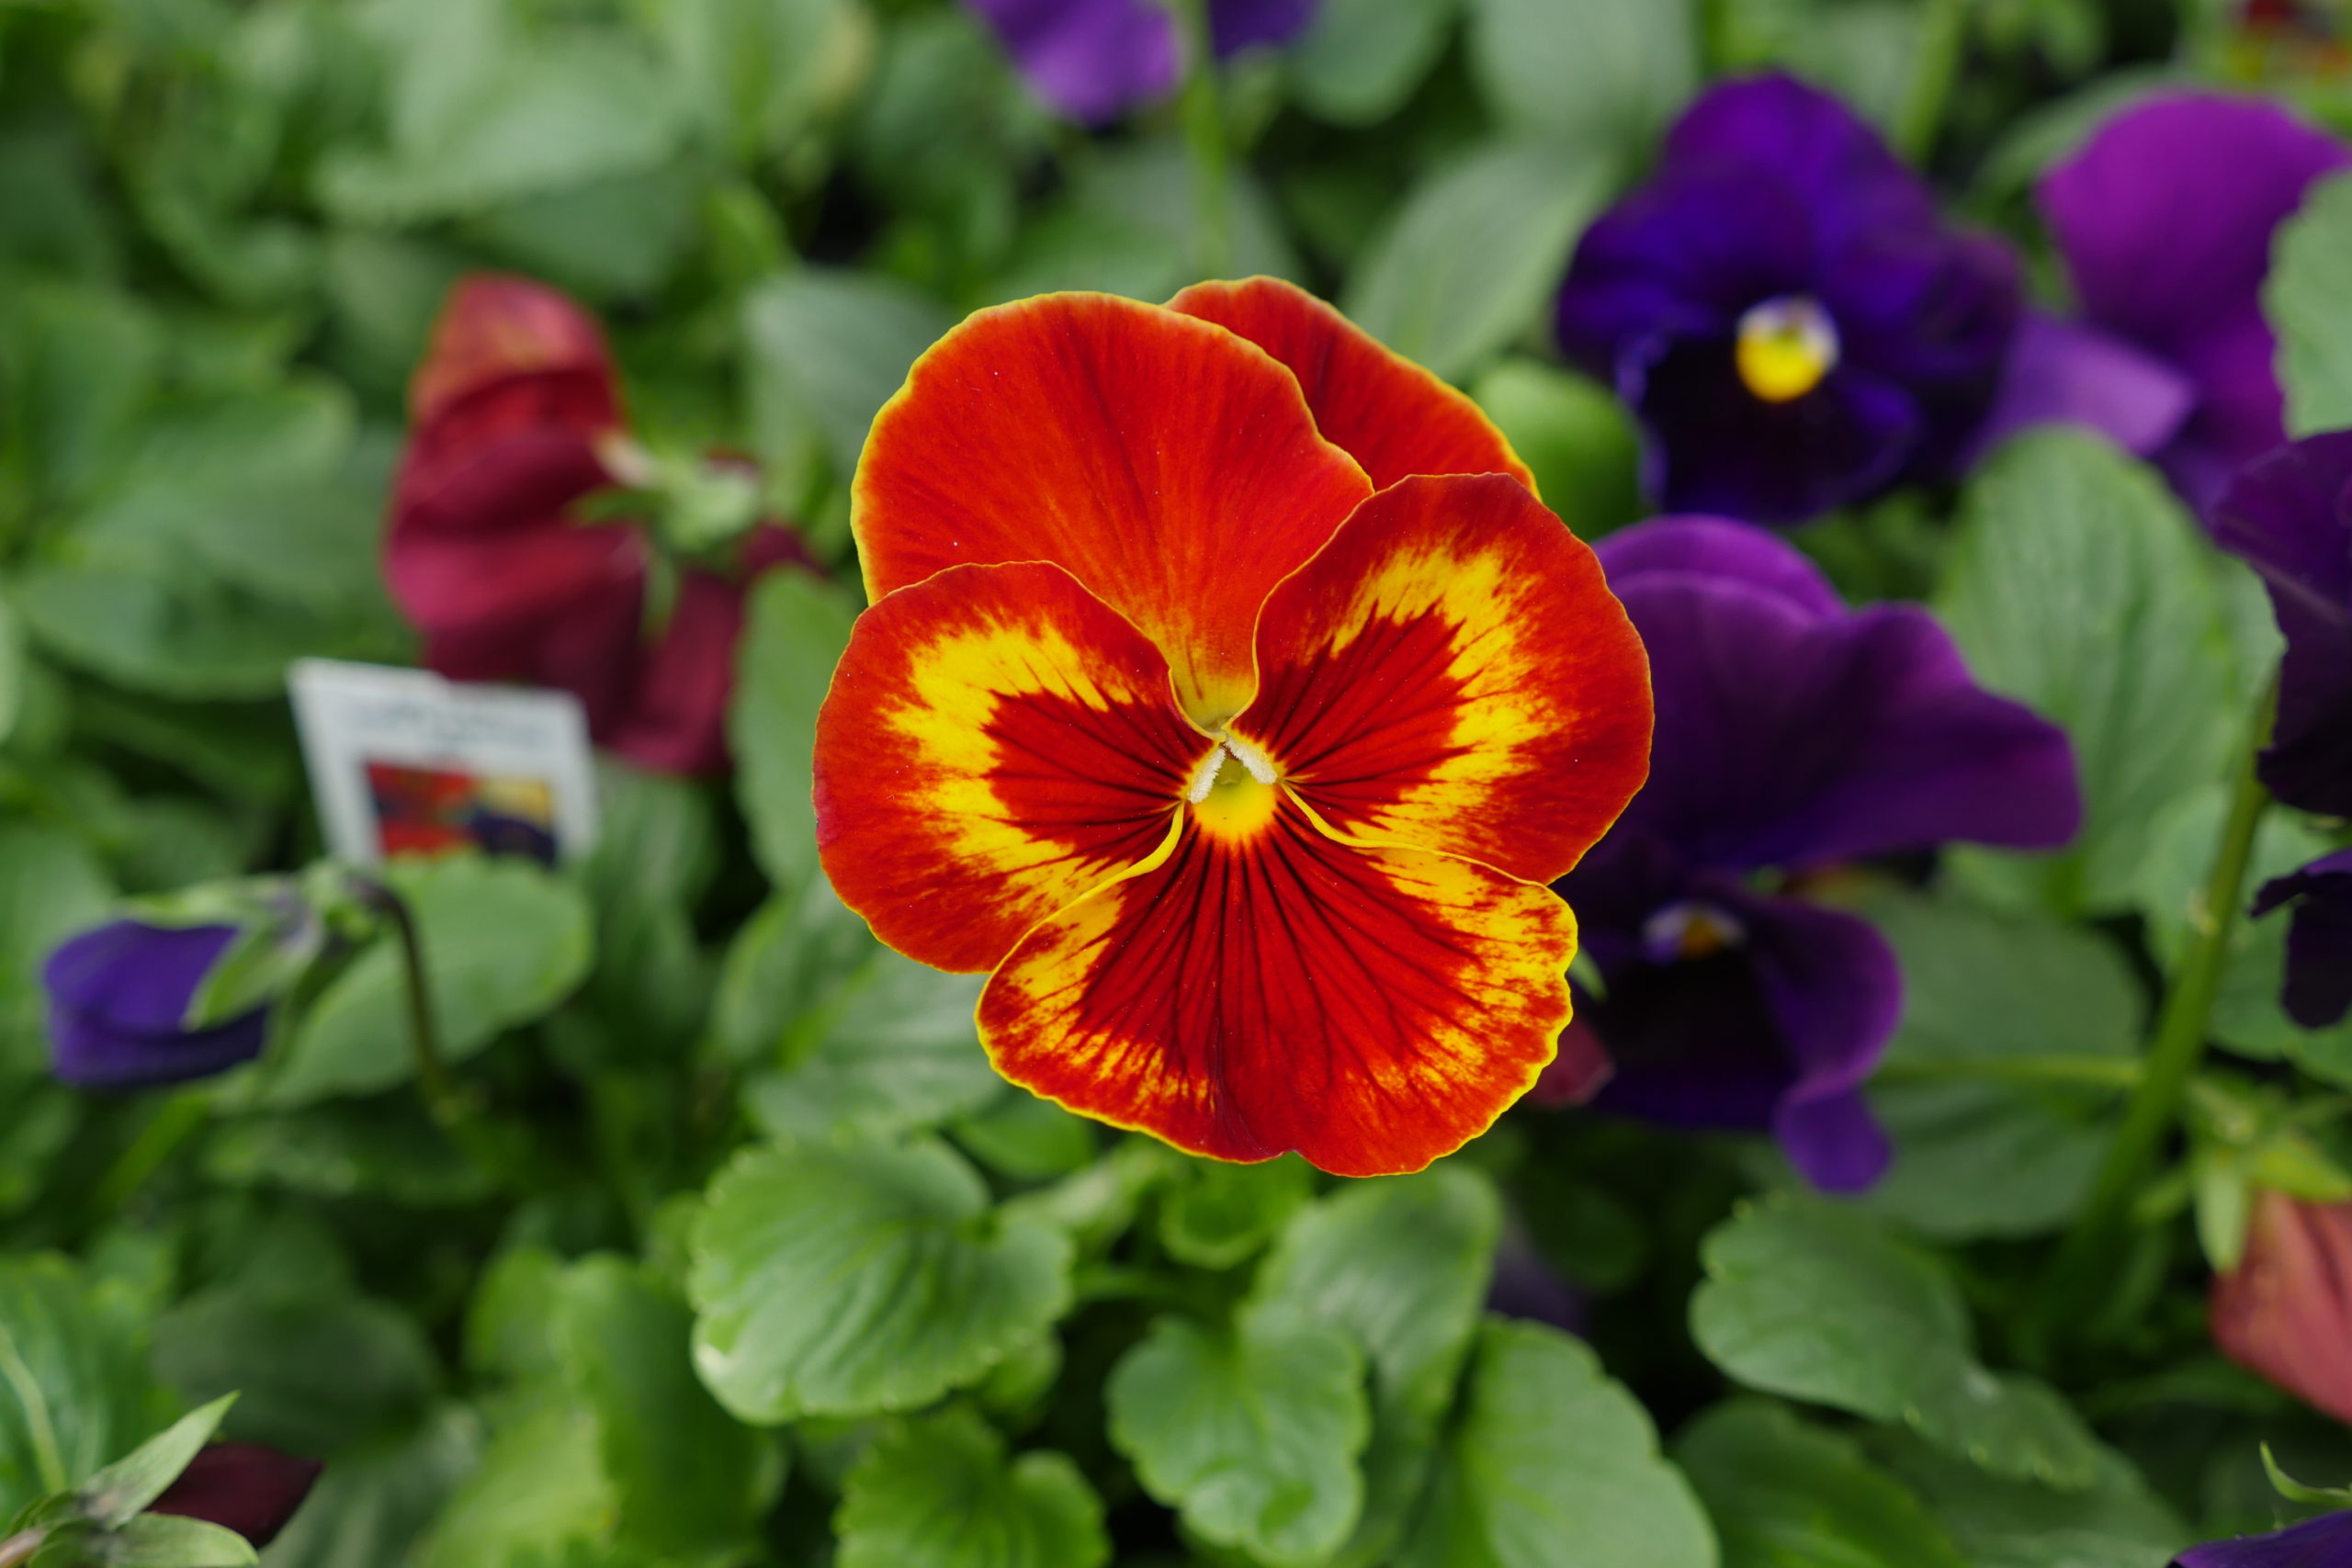 The vibrant colors on this flower show the depth of breeding in these plants over the past two decades. Is this a pansy or viola?